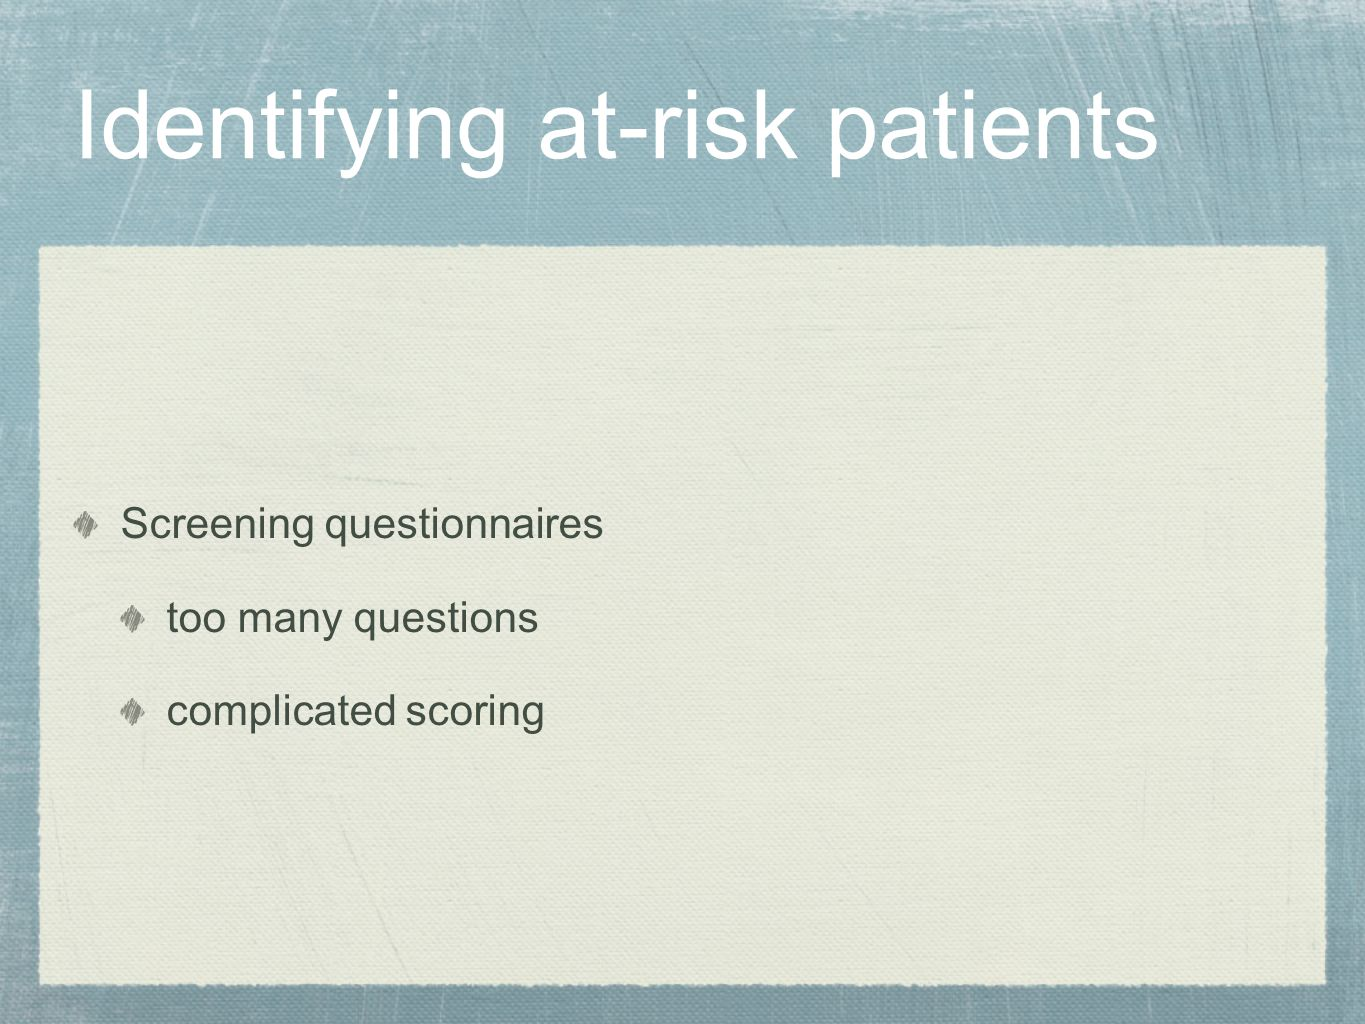 Identifying at-risk patients